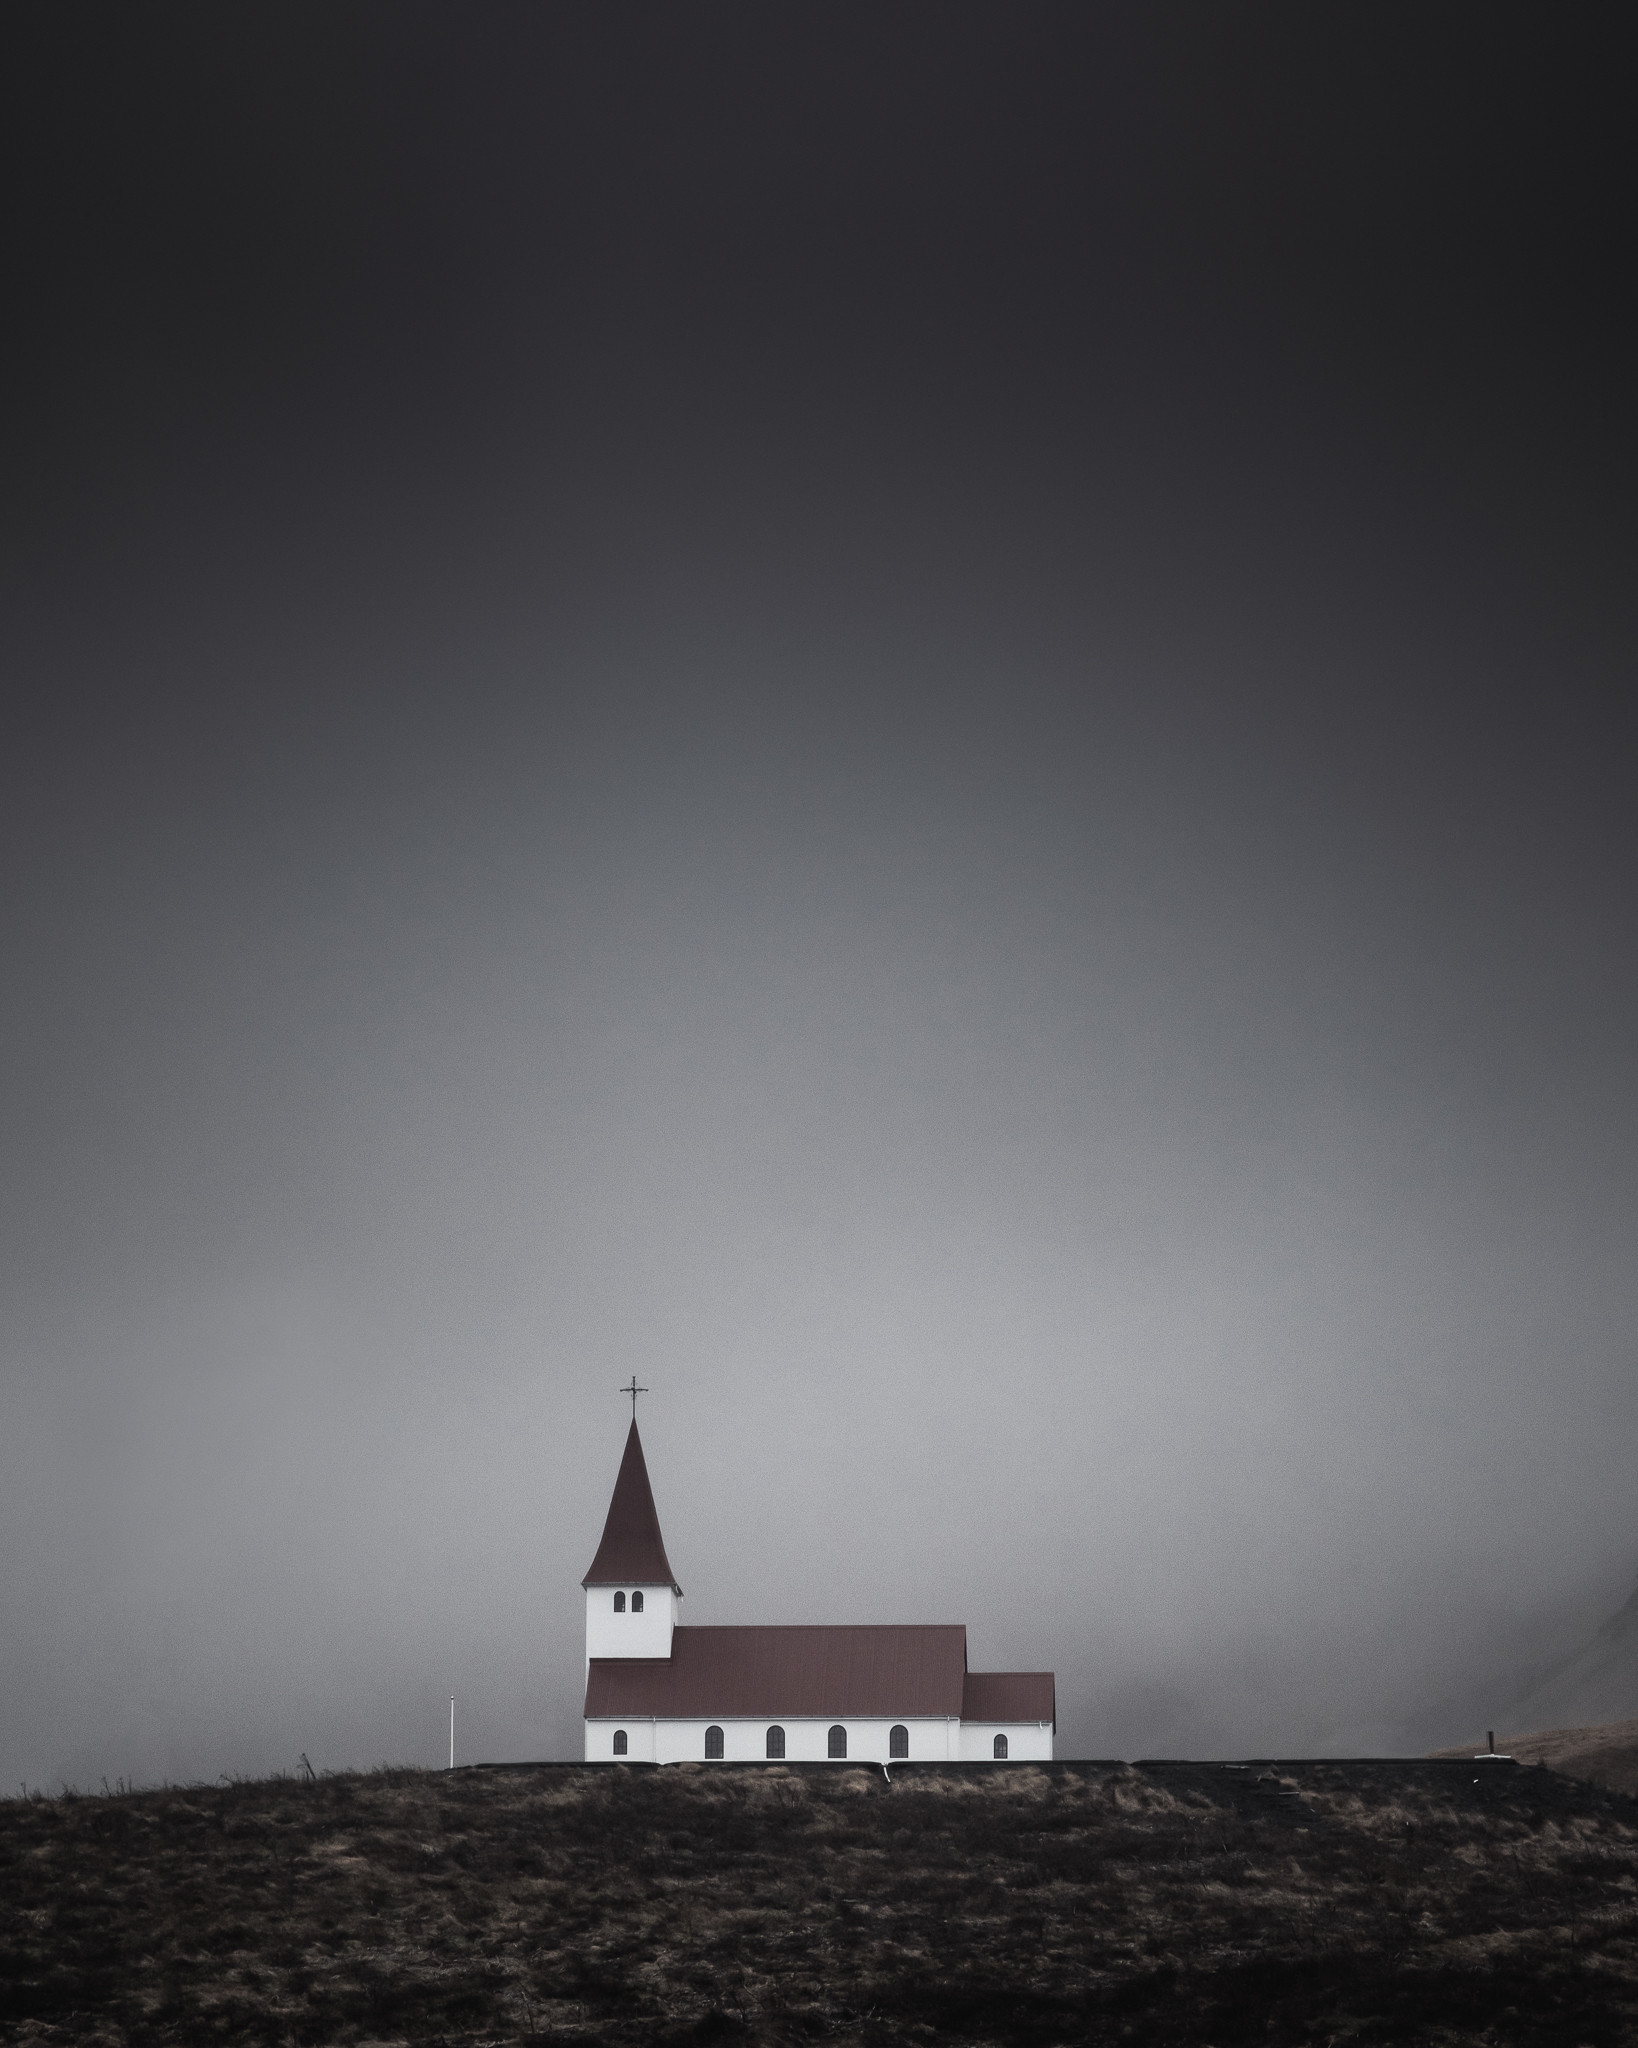 vik-church_45457597495_o.jpg